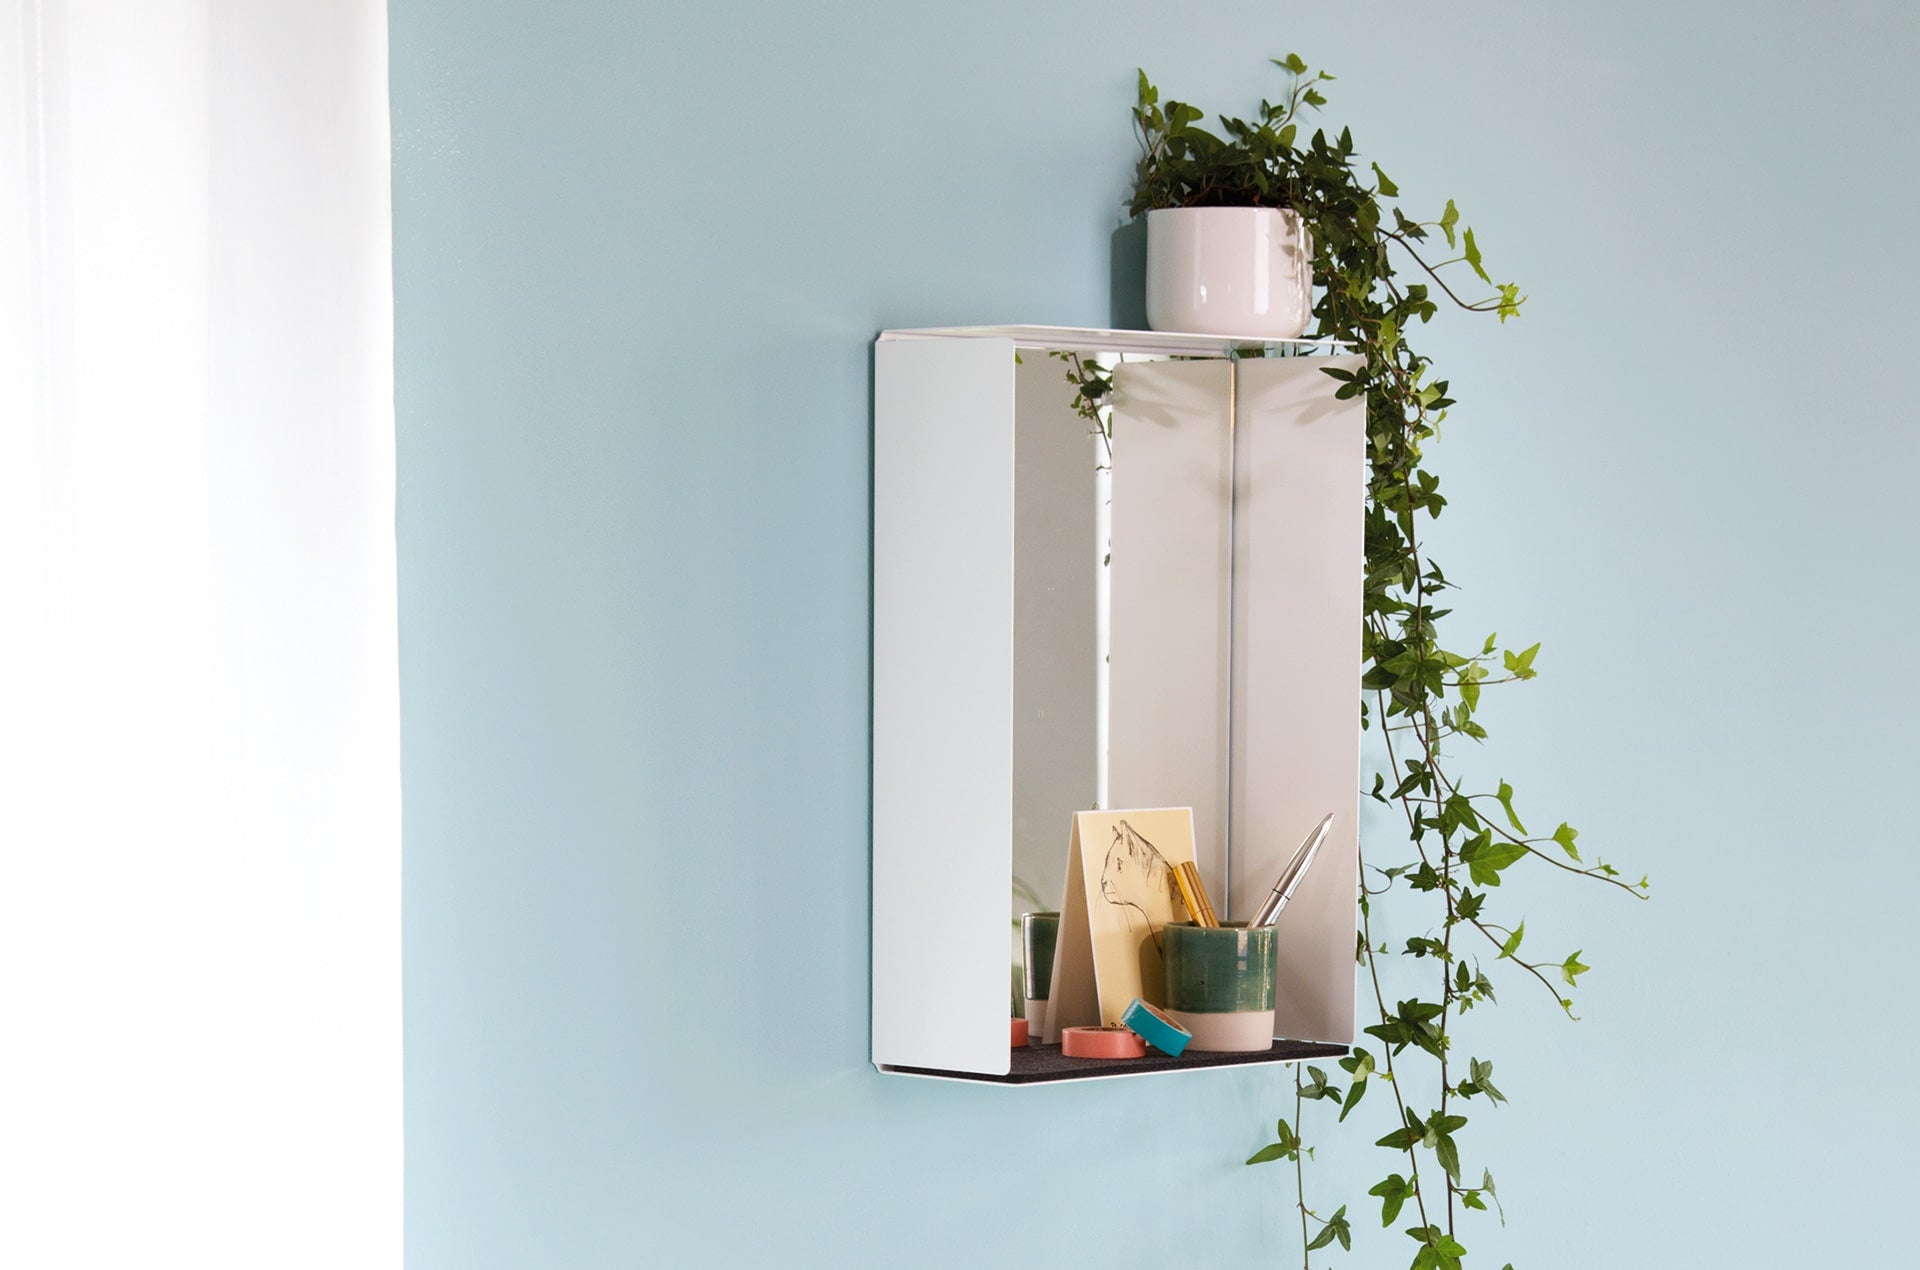 Etagère murale Mirror Box Blanc-feutre vert-PARIDEO design durable